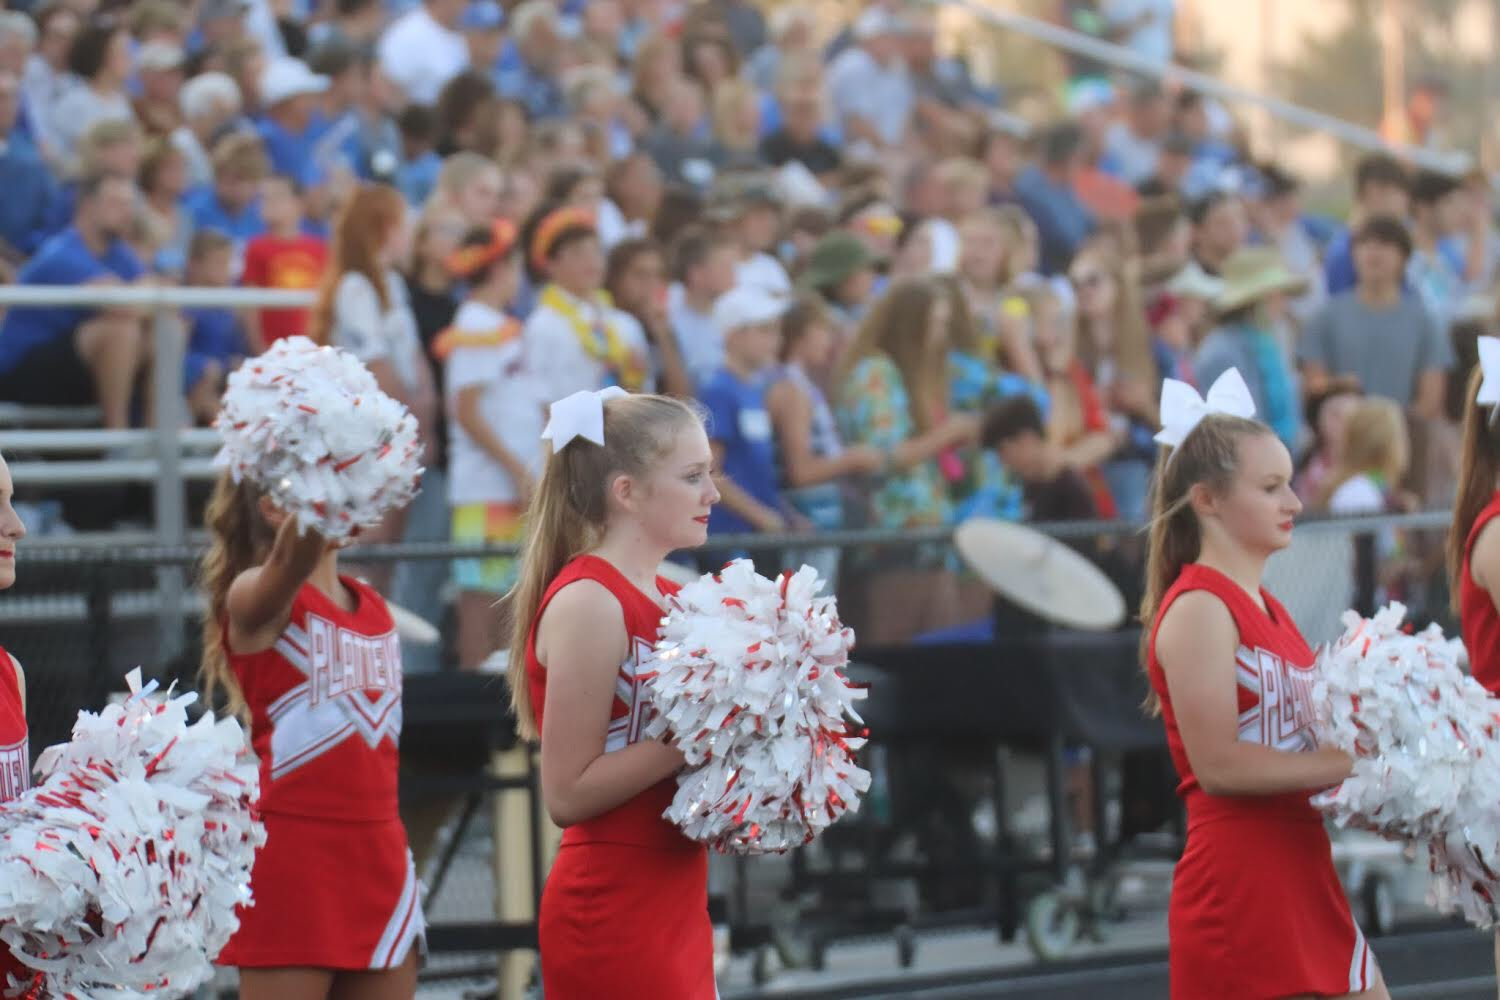 Platteview Cheerleaders, Mary Houlton and Baily Korenoski, spiriting at the home football game on September 6th, where the Trojans played the Blue Jays.